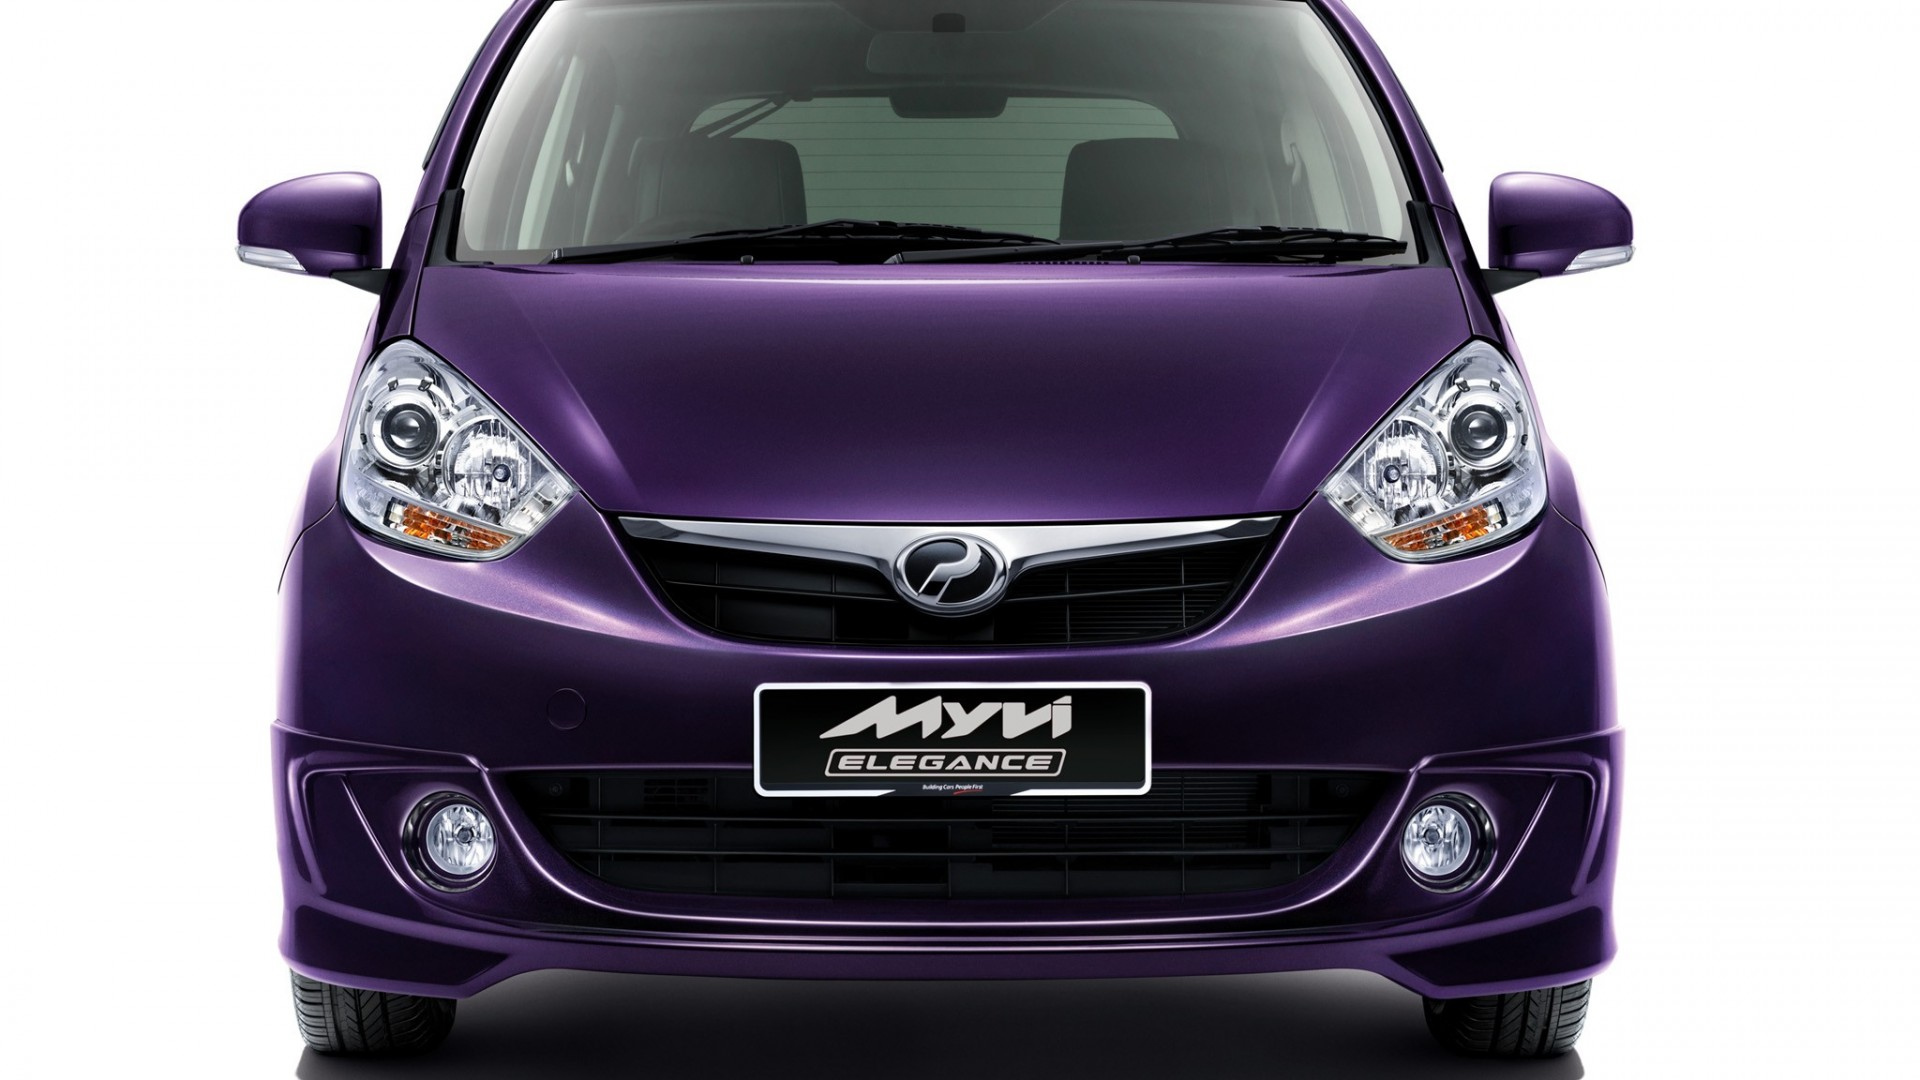 2011 Perodua MyVi Elegance front   Car  free download HD Wallpaper